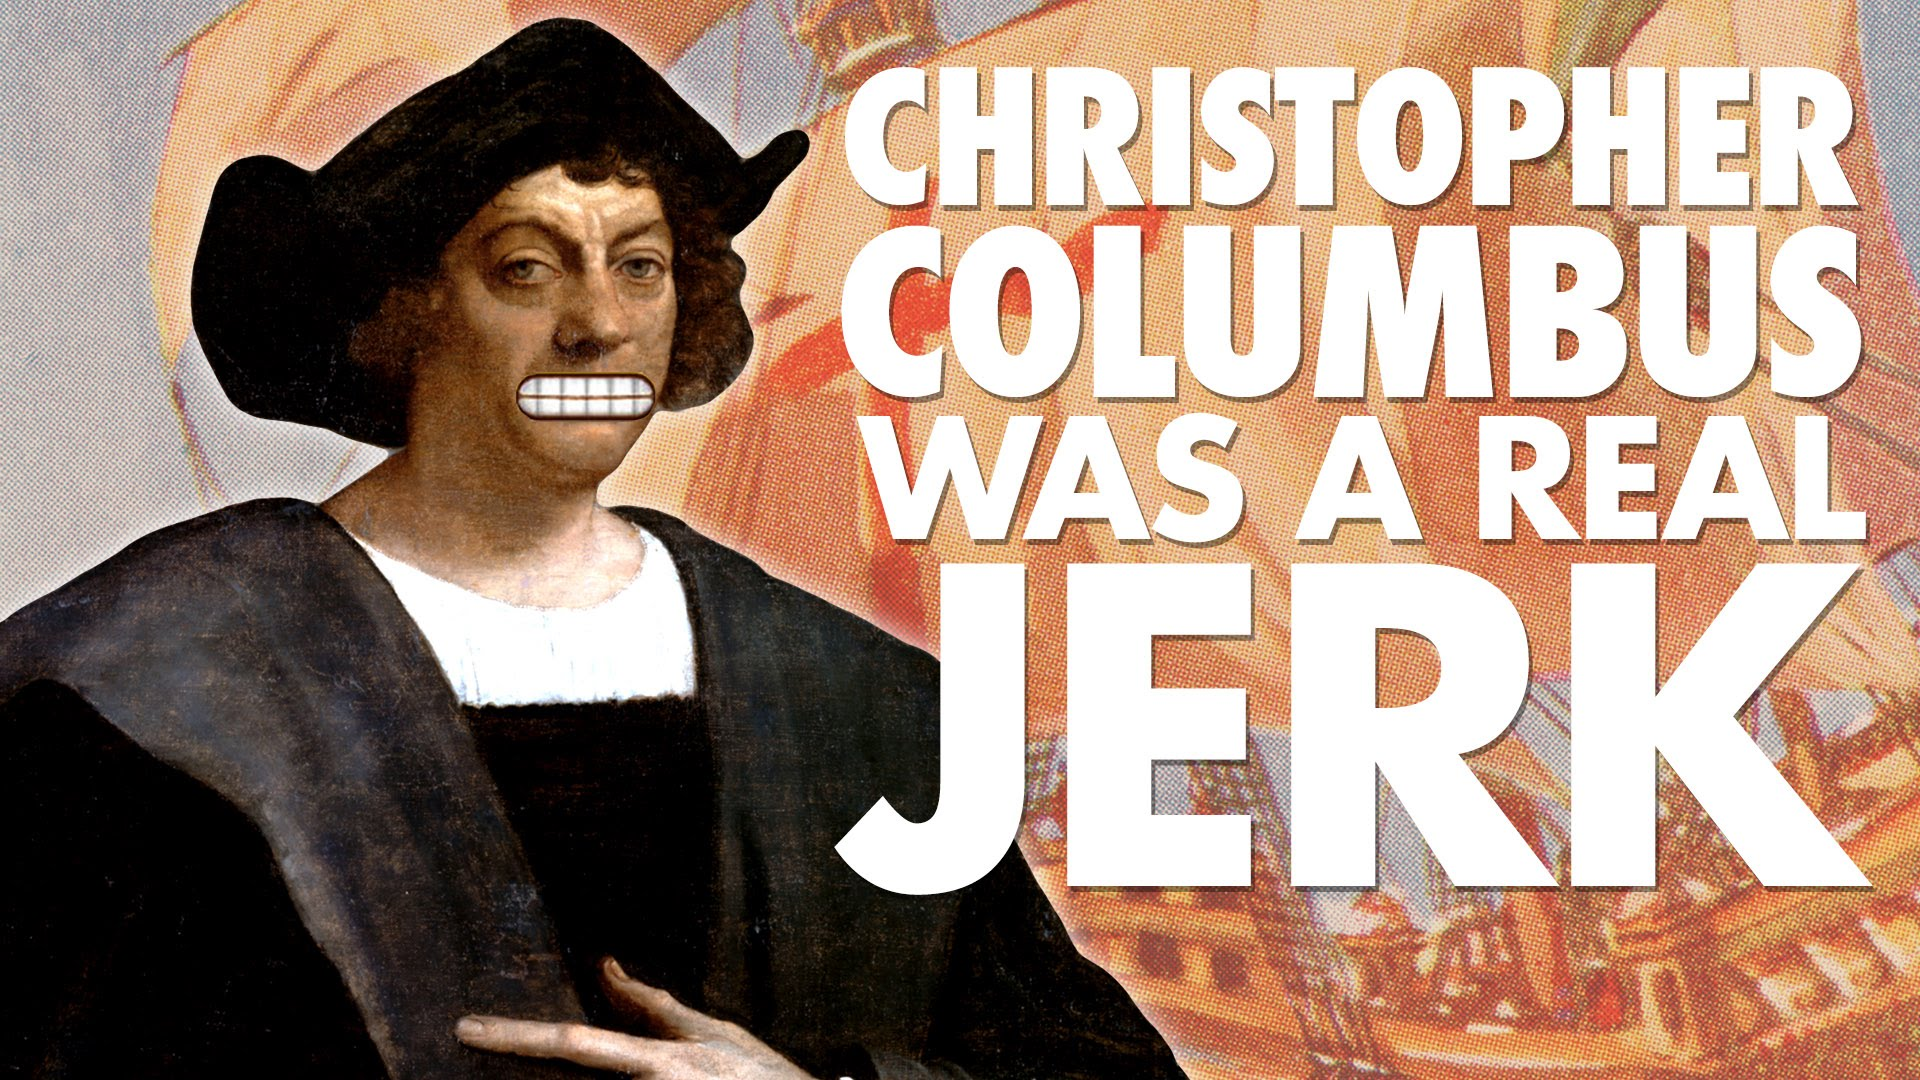 christopher columbus hero or villain  christopher columbus hero or villain